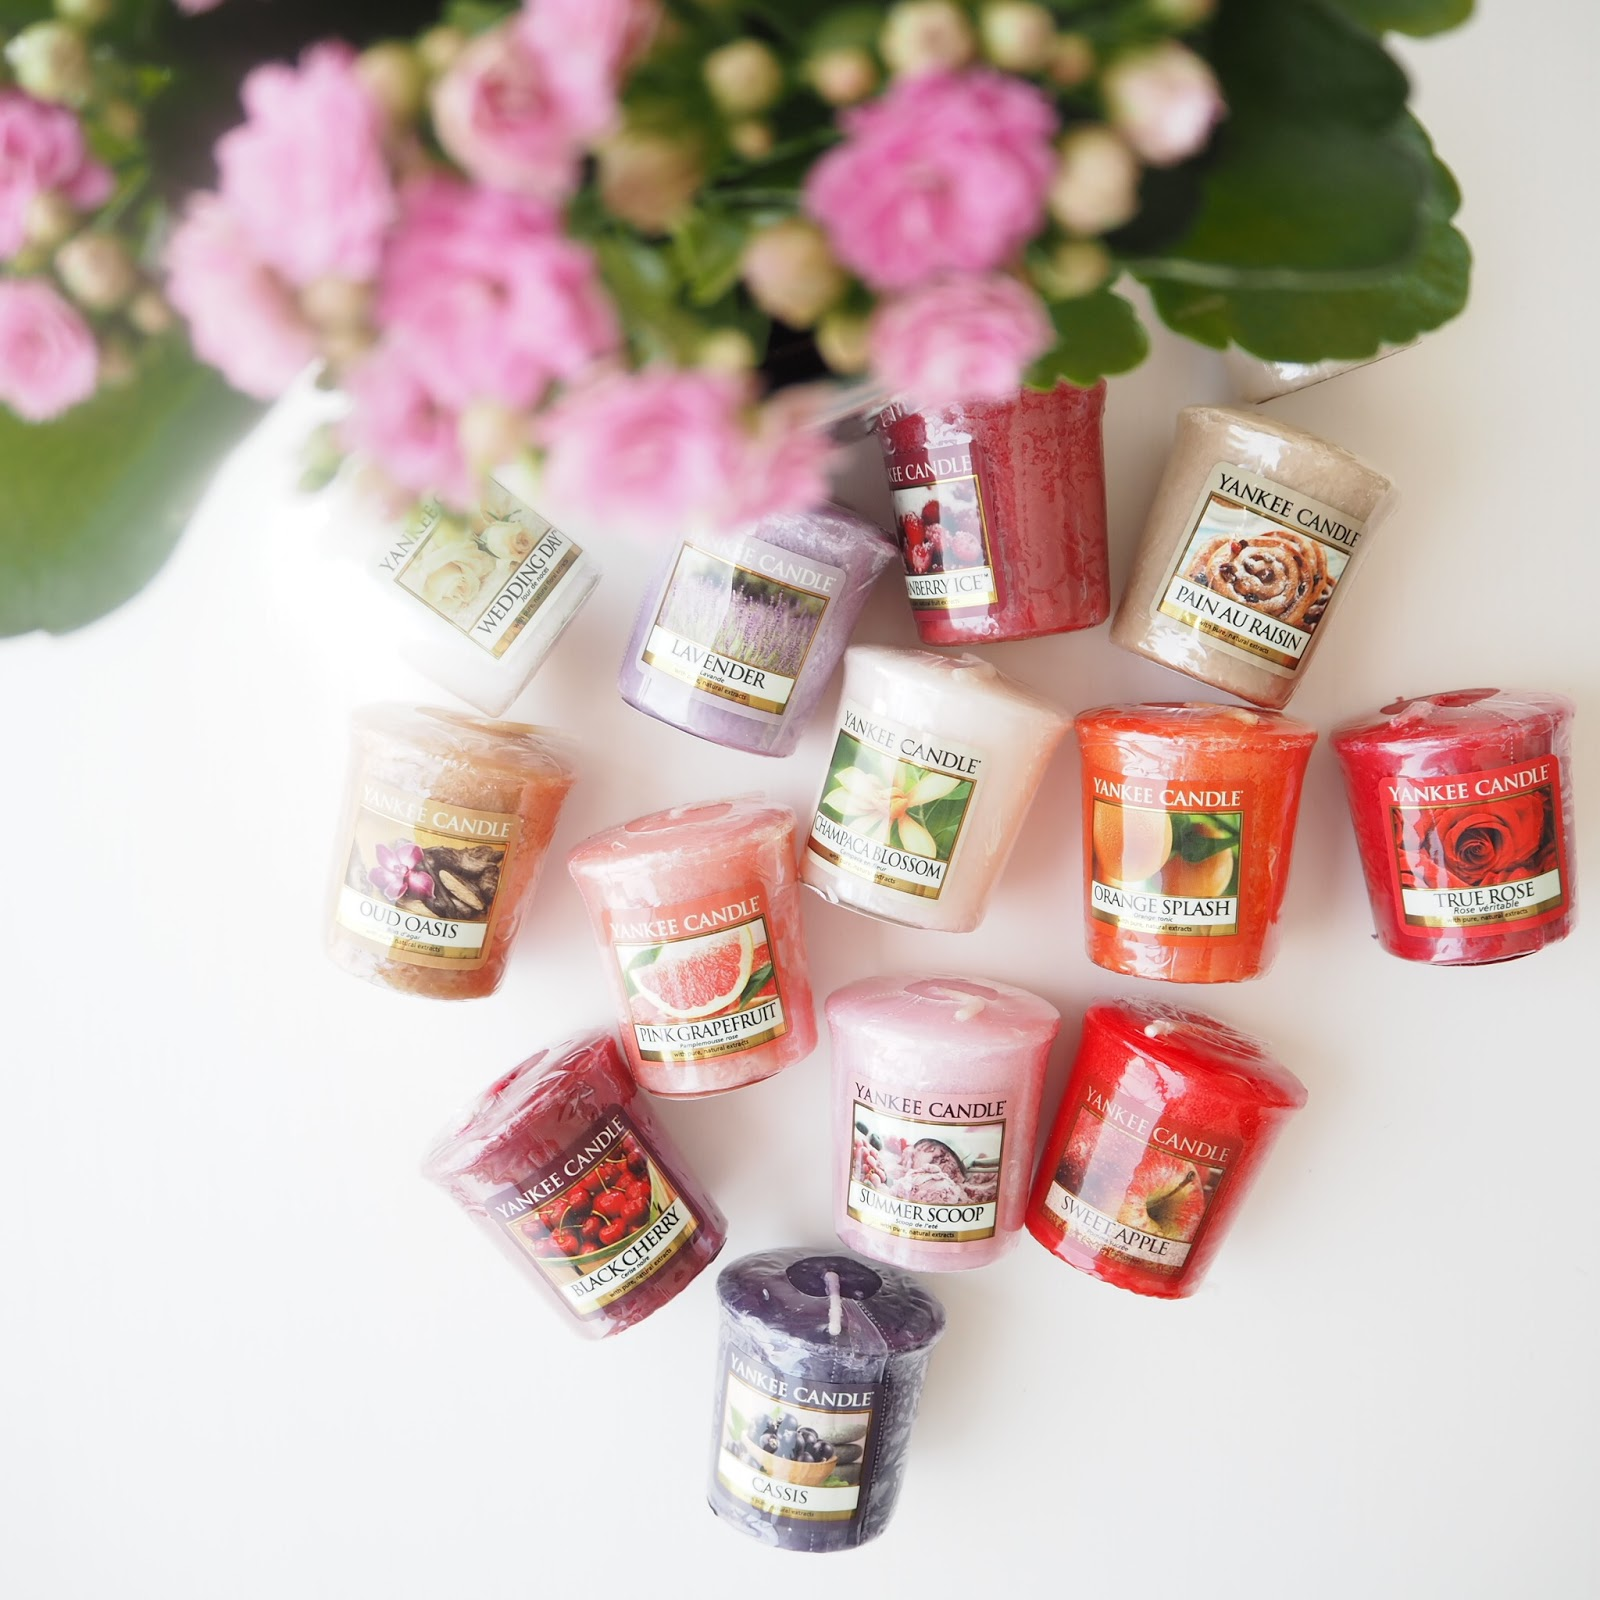 Yankee Candle Votive Haul & Review - Life in Excess Blog